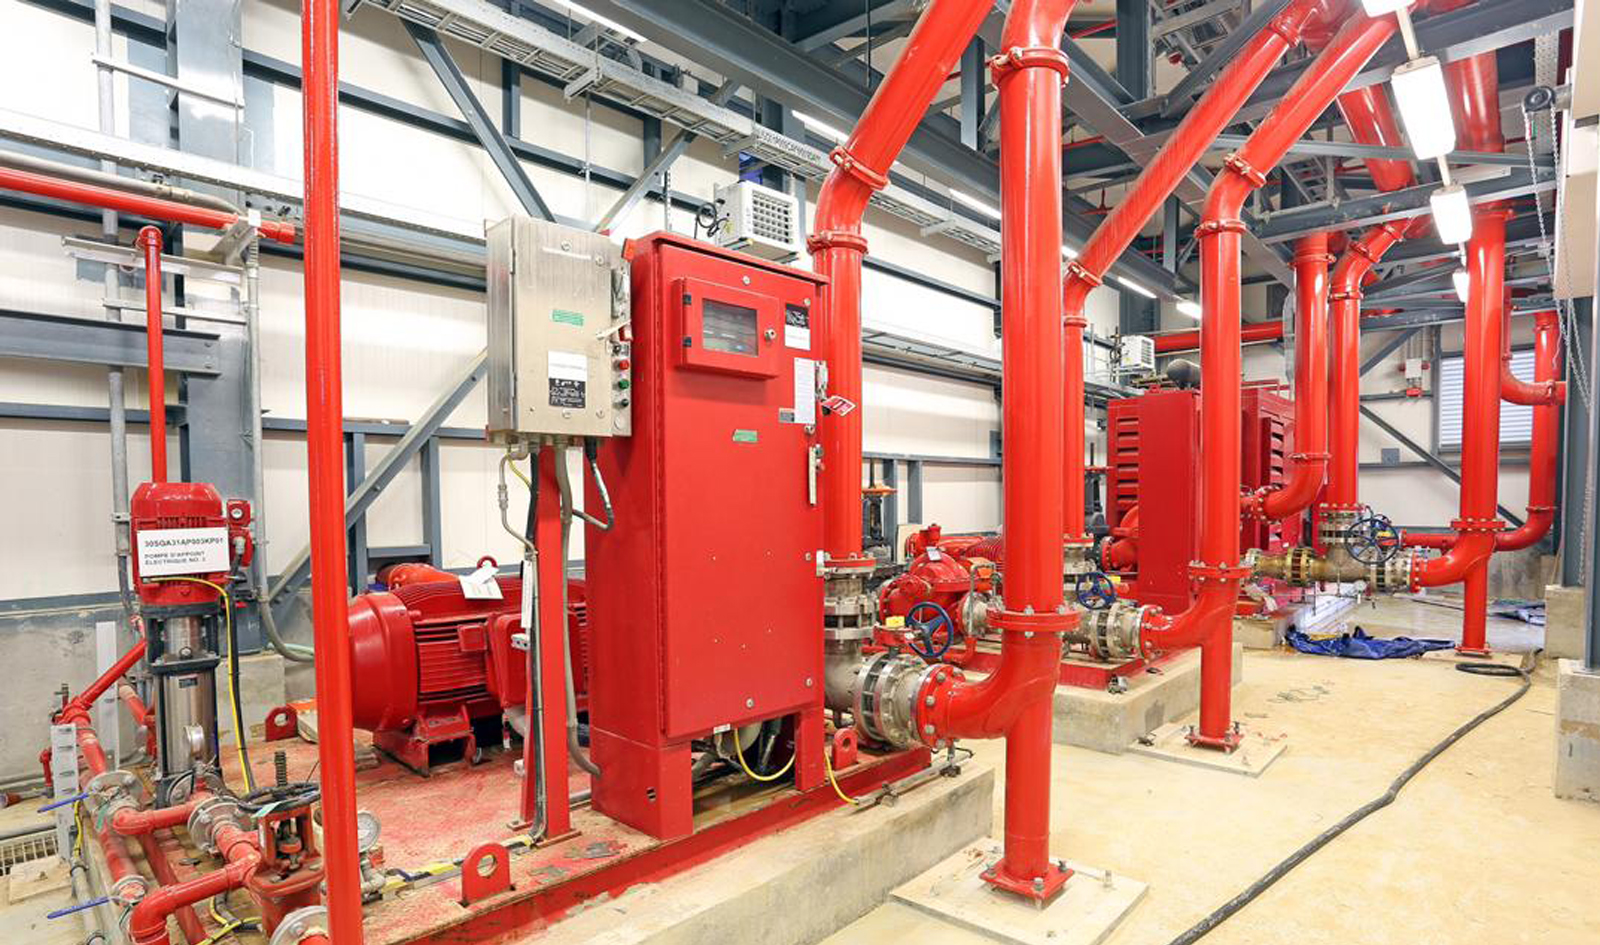 Improve Industrial Fire Safety System